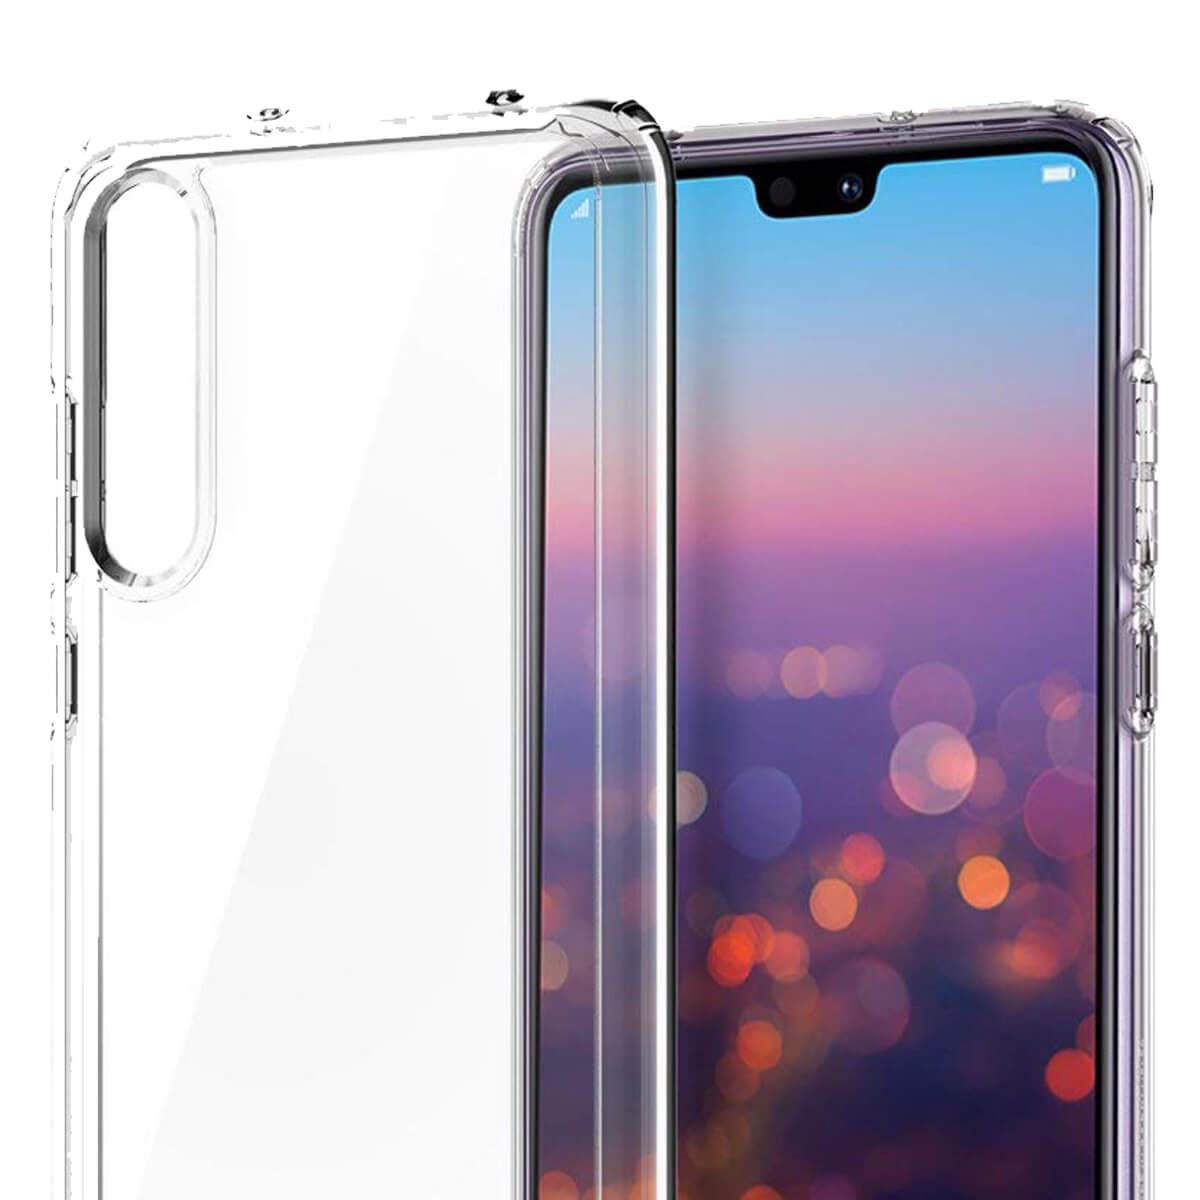 Case-For-Huawei-P20-Pro-P-Smart-Shockproof-Silicone-Protective-Clear-Gel-Cover thumbnail 5